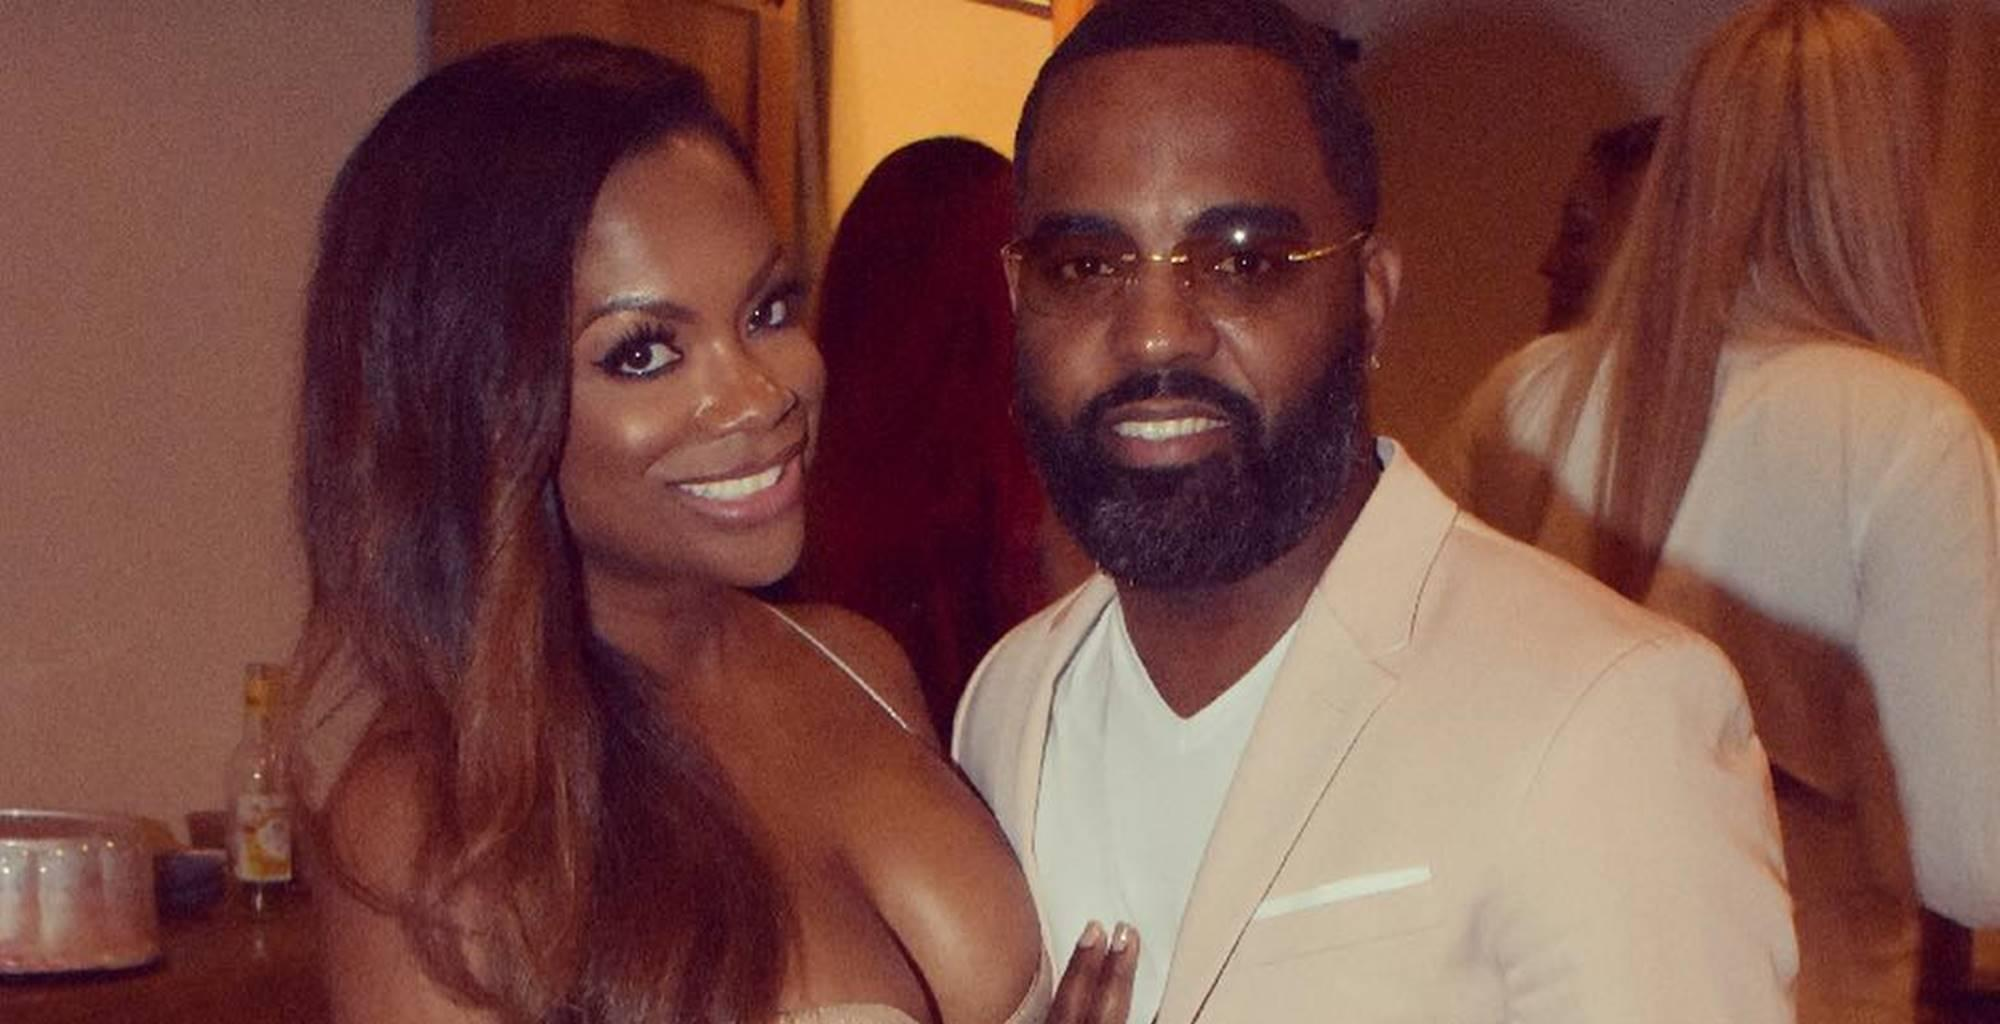 'RHOA' Star Kandi Burruss' Sweet Video About Food And Todd Gets Derailed By Critics Bringing Up Porsha Williams